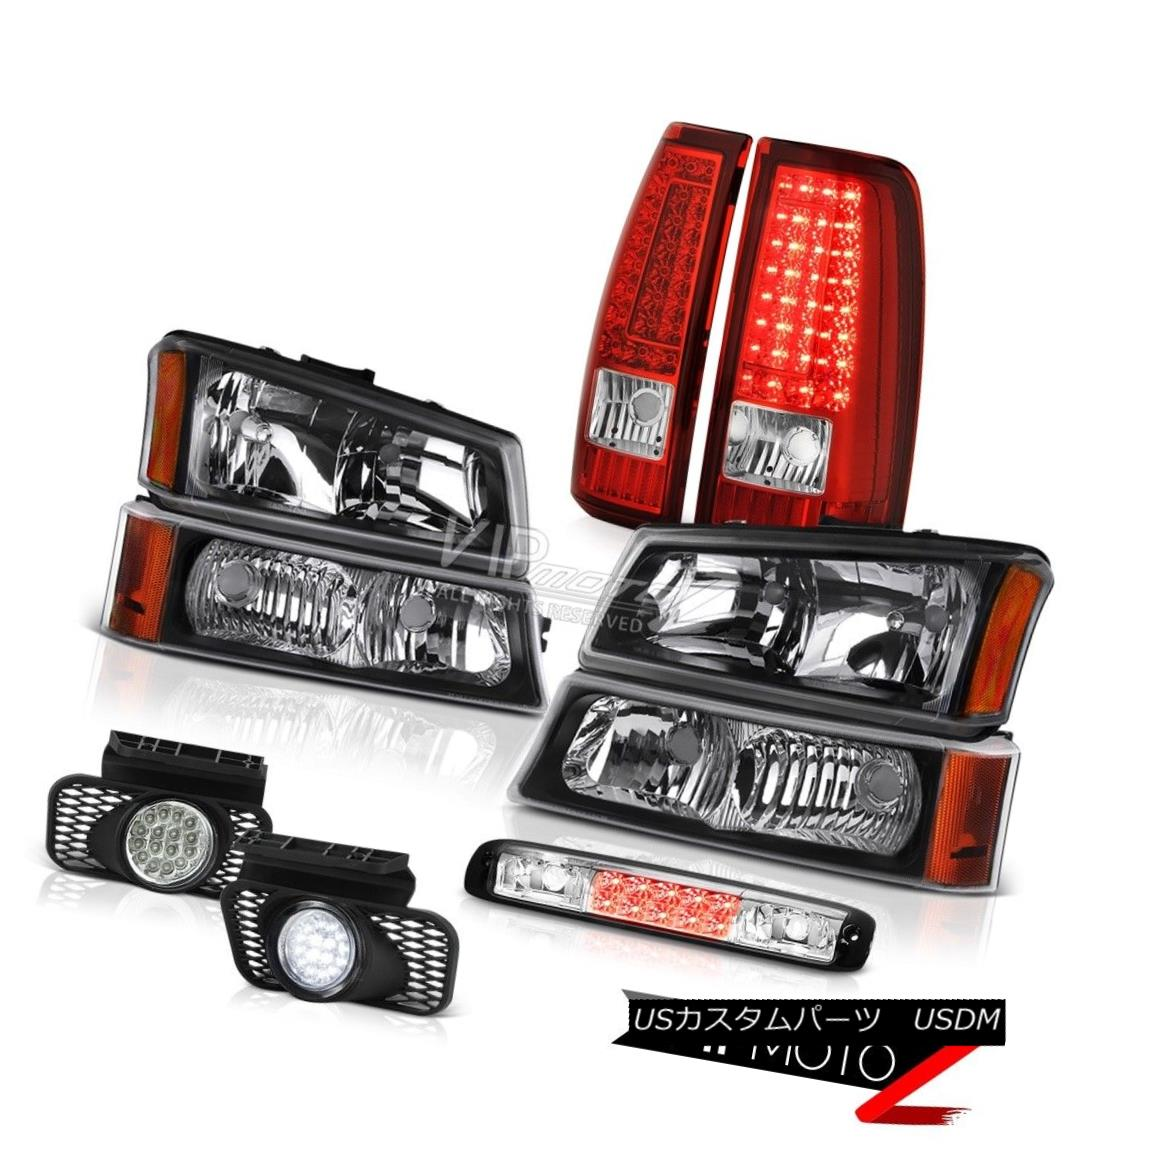 ヘッドライト 03-06 Silverado Chrome 3RD Brake Light Fog Lights Wine Red Taillamps Headlights 03-06 Silverado Chrome 3RDブレーキライトフォグライトワイ